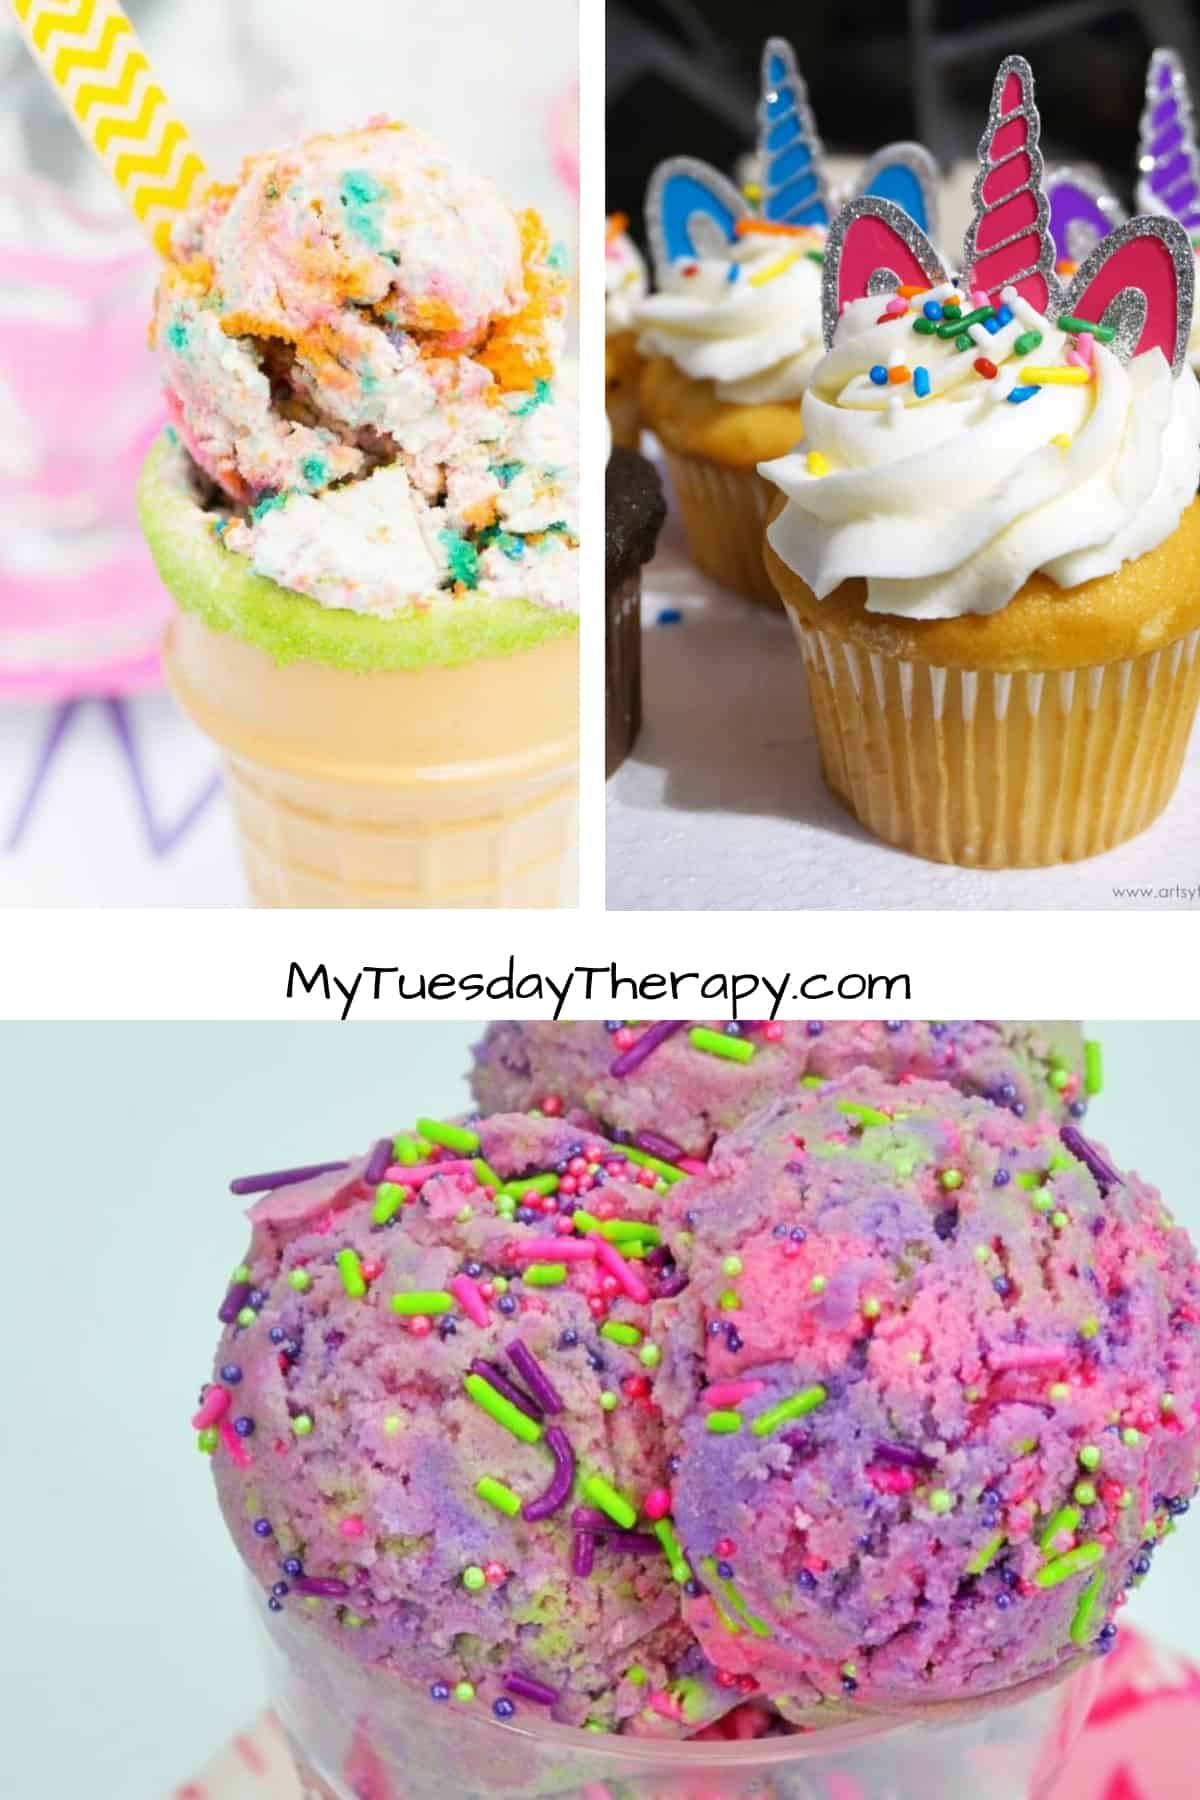 Unicorn Desserts: Unicorn Ice Cream, Unicorn Cupcakes and Unicorn Dough